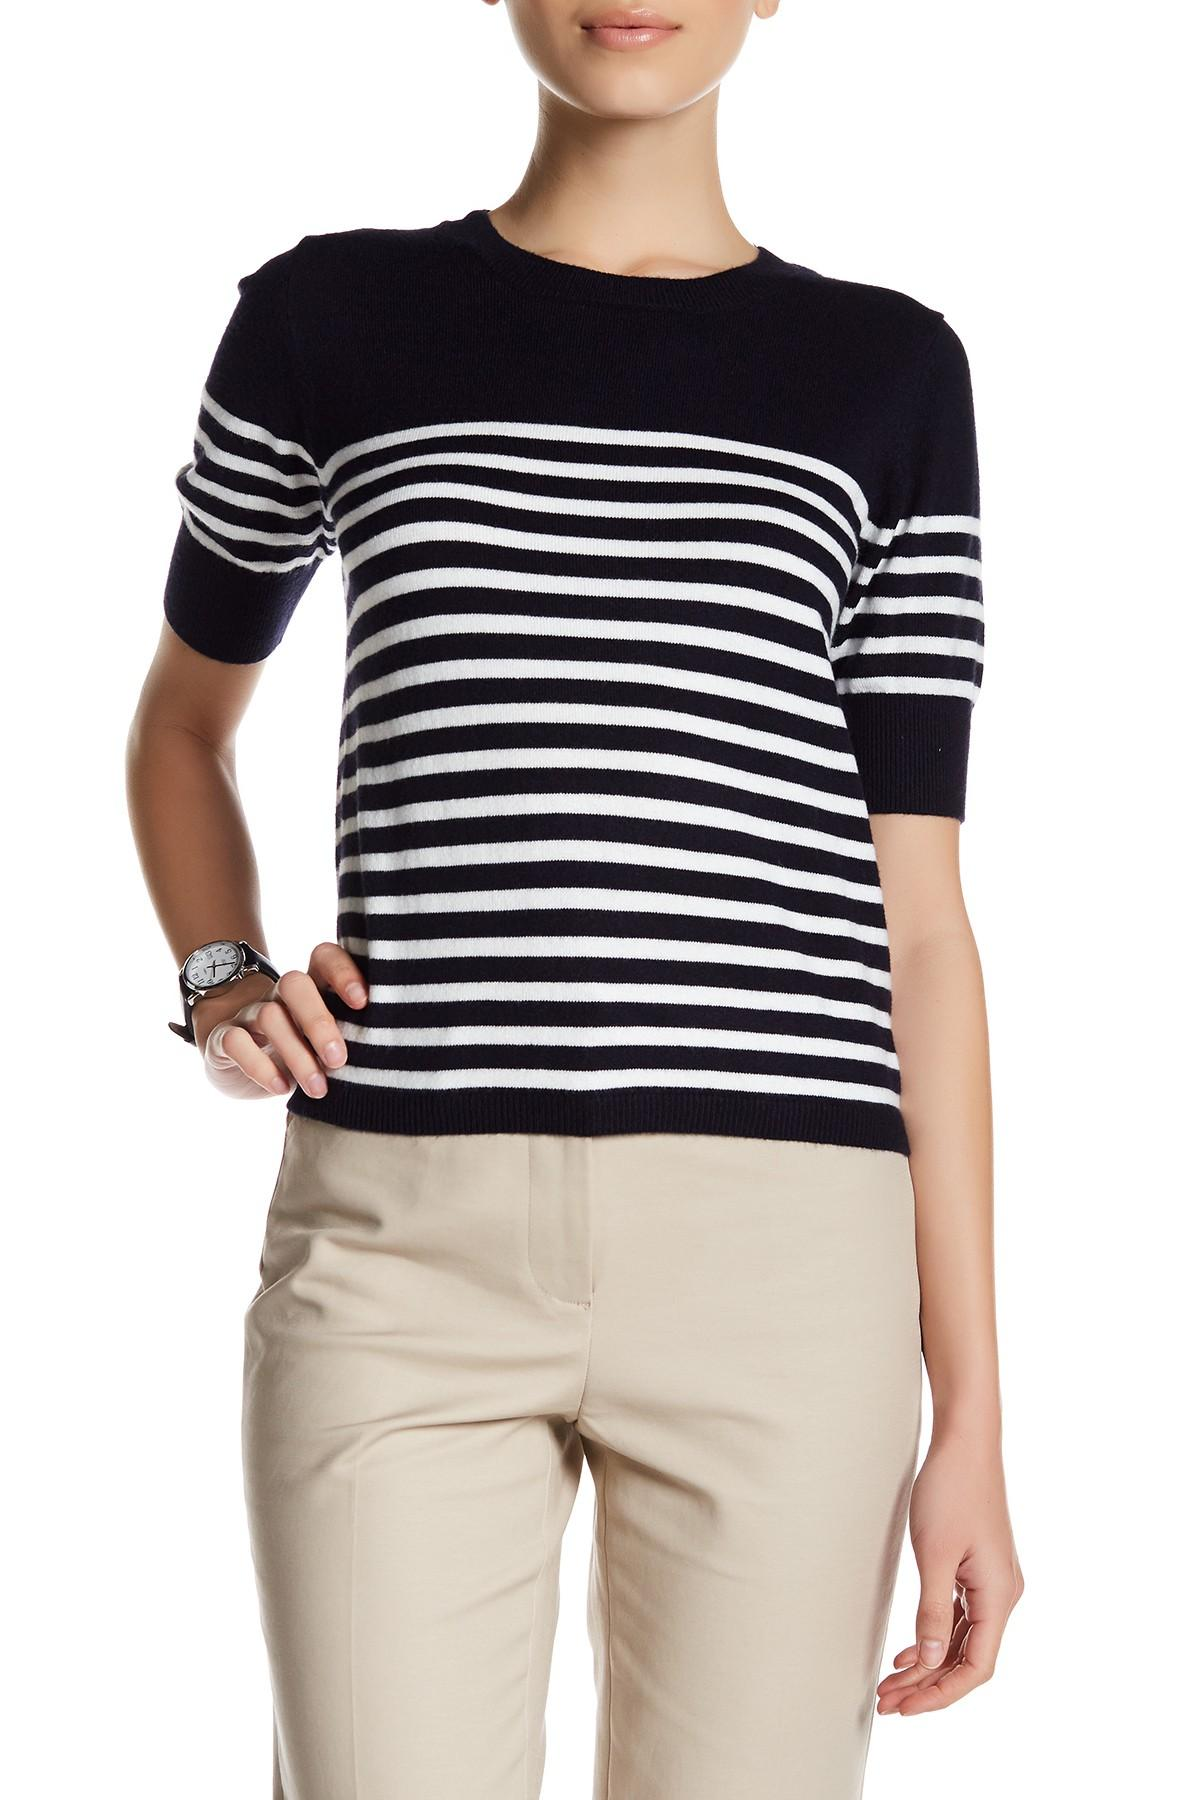 Lyst Premise Studio Elbow Length Sleeve Striped Sweater